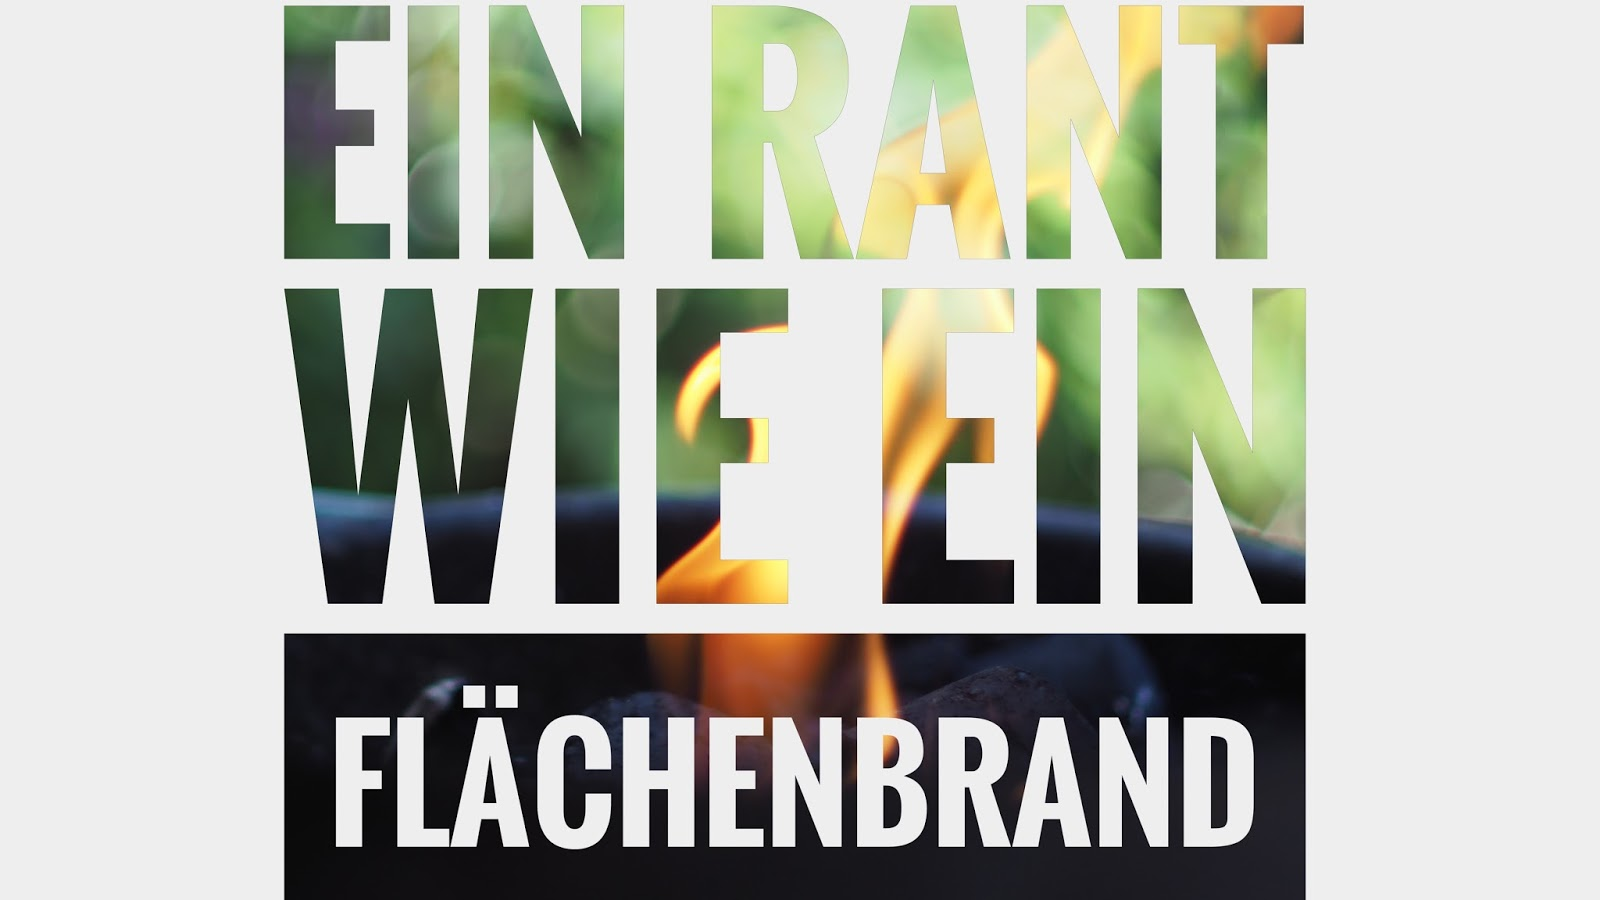 Instagram ist kein Blog | Das Influencer Marketing ist kaputt - es lebe das Influencer Marketing